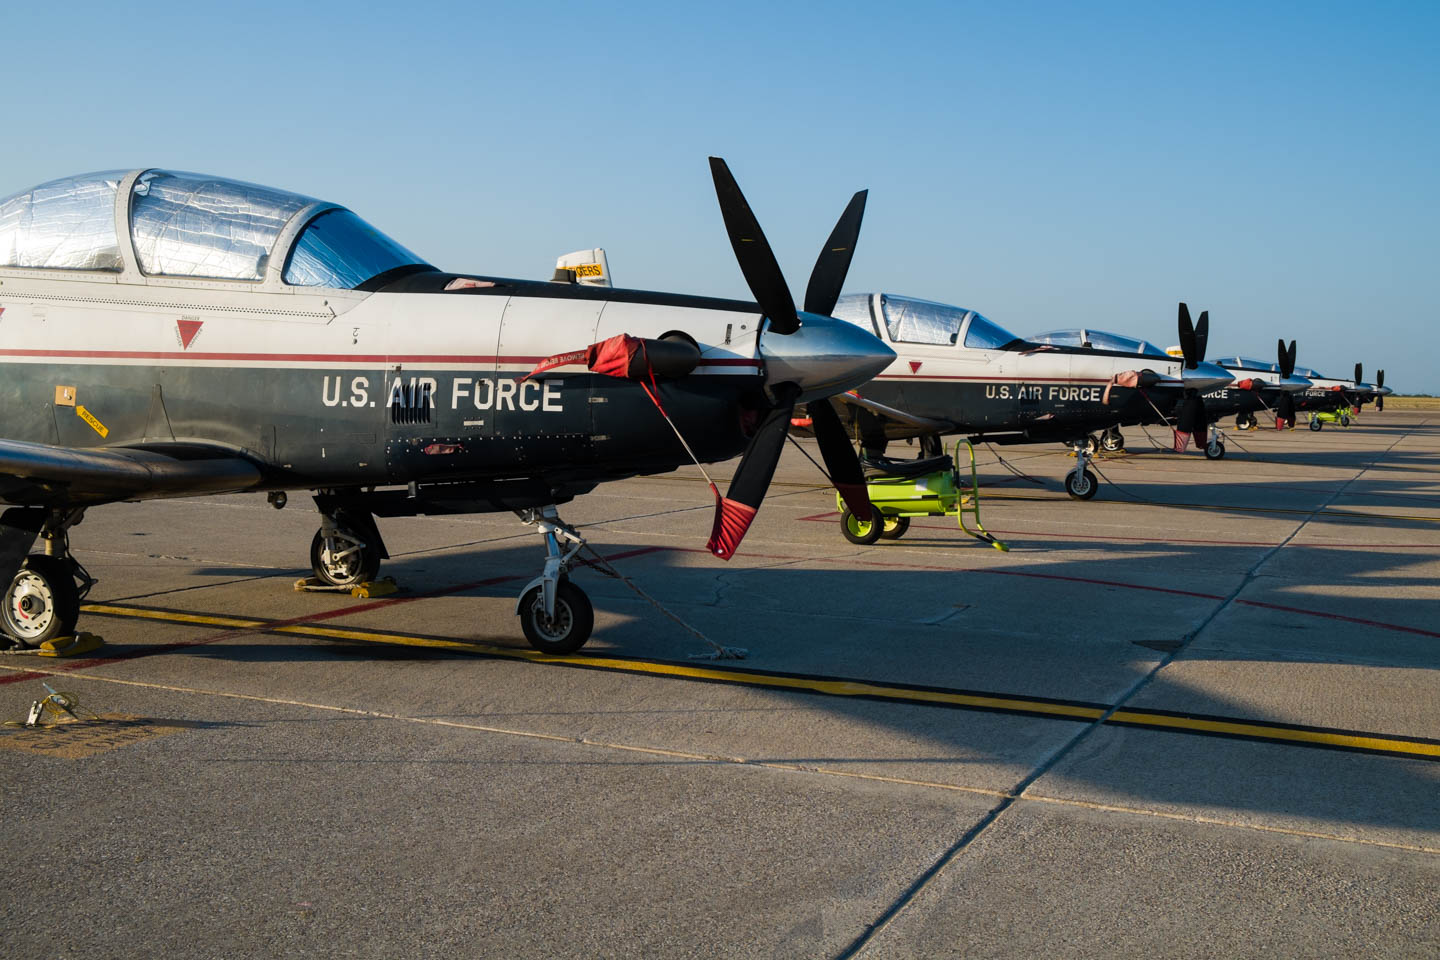 Cool Plane Propellers : Some t airplanes at an air base dav d photography